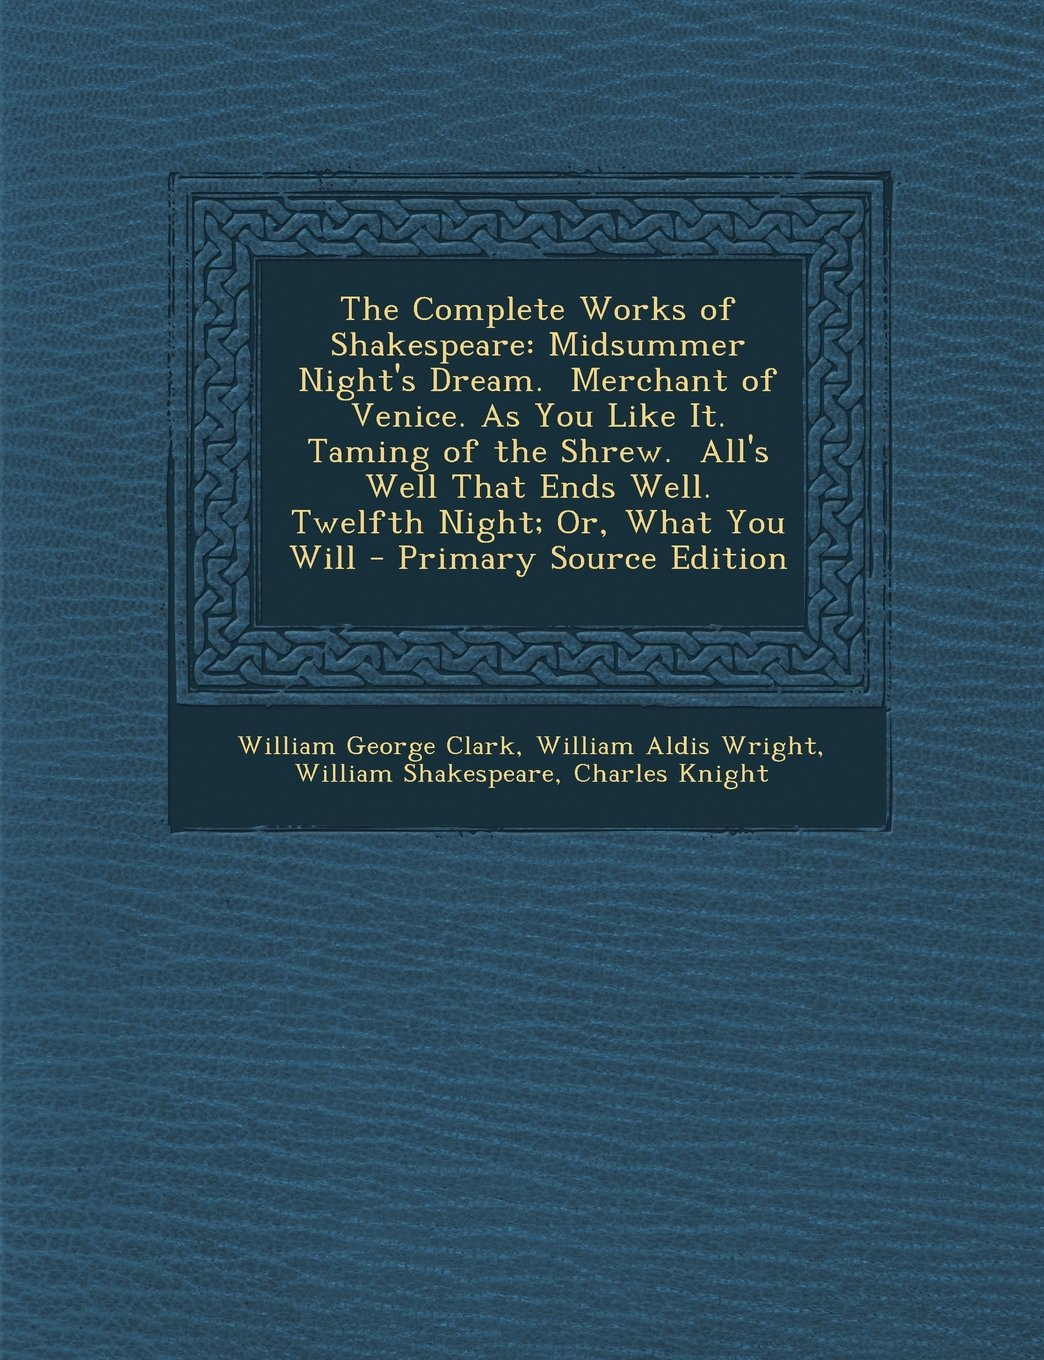 The Complete Works of Shakespeare: Midsummer Night's Dream  Merchant